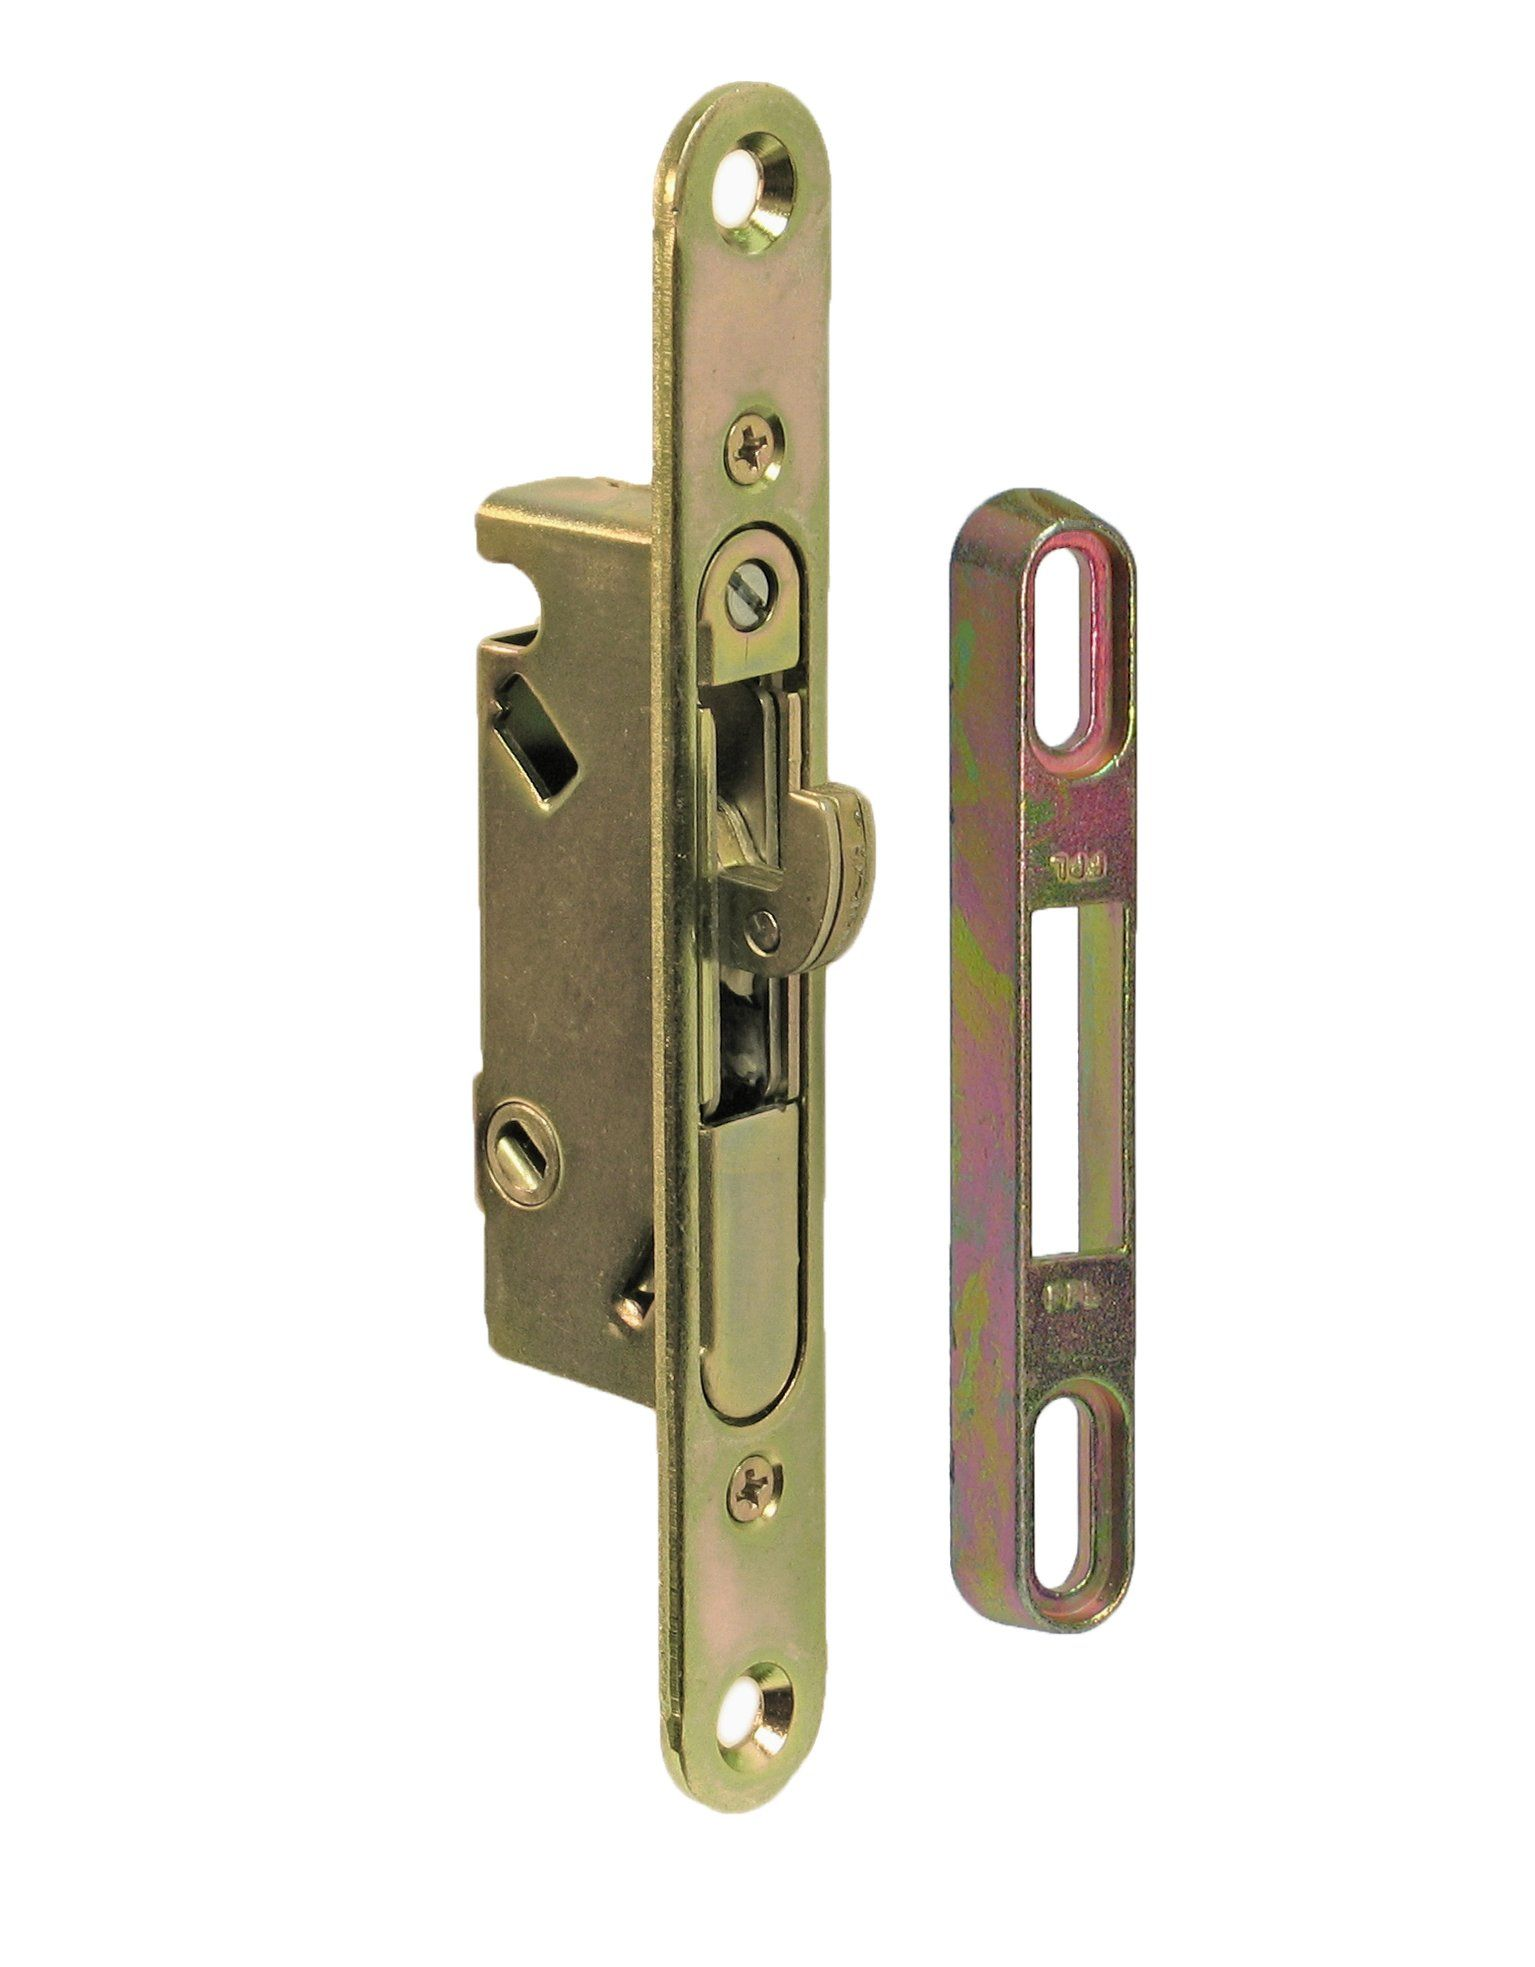 Fpl 3 45 S Sliding Glass Door Replacement Mortise Lock With Adapter